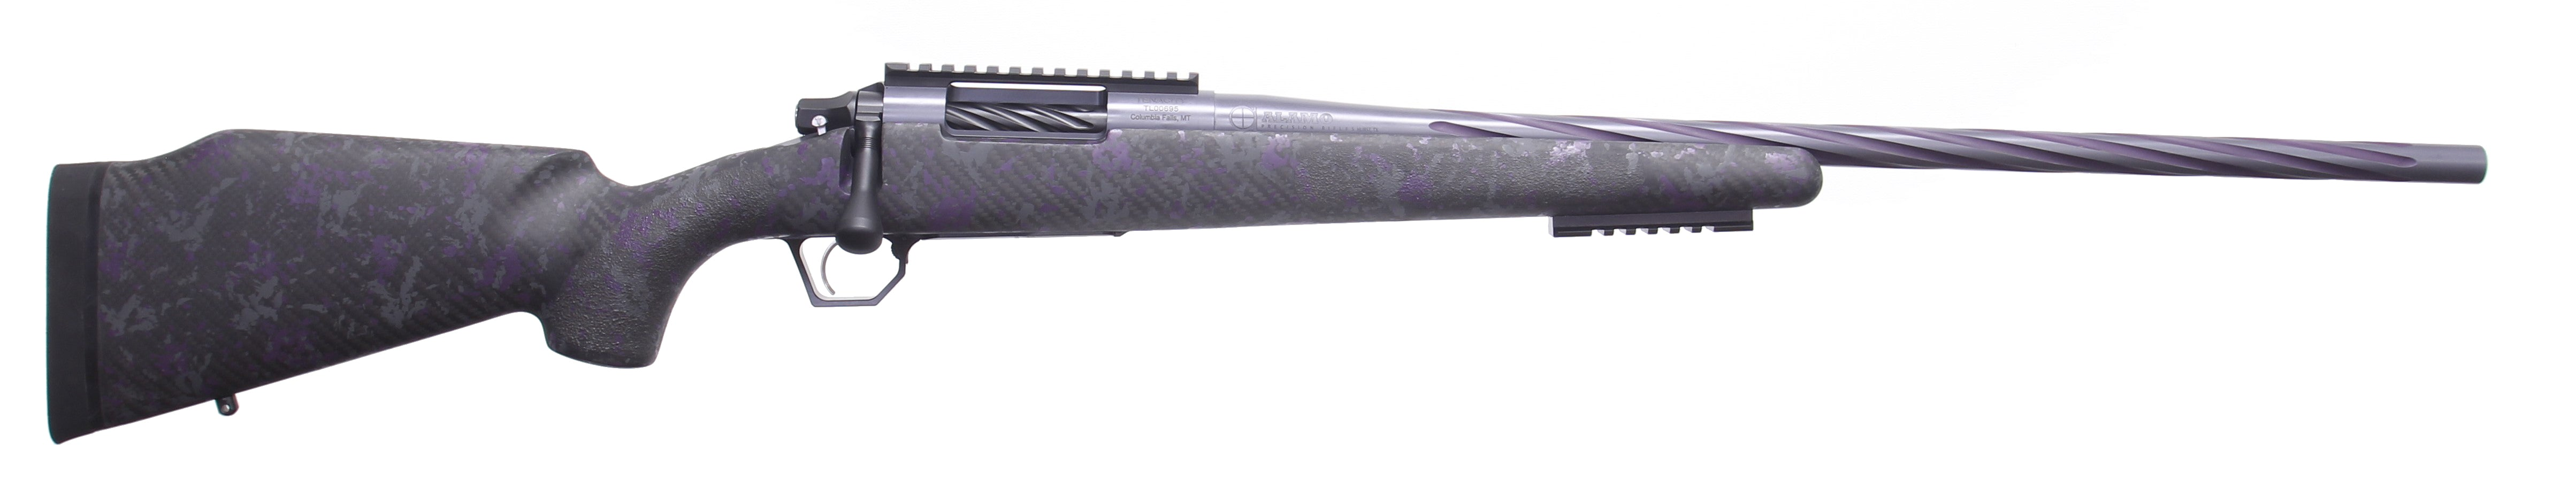 APR Maverick 6.5 Creedmoor